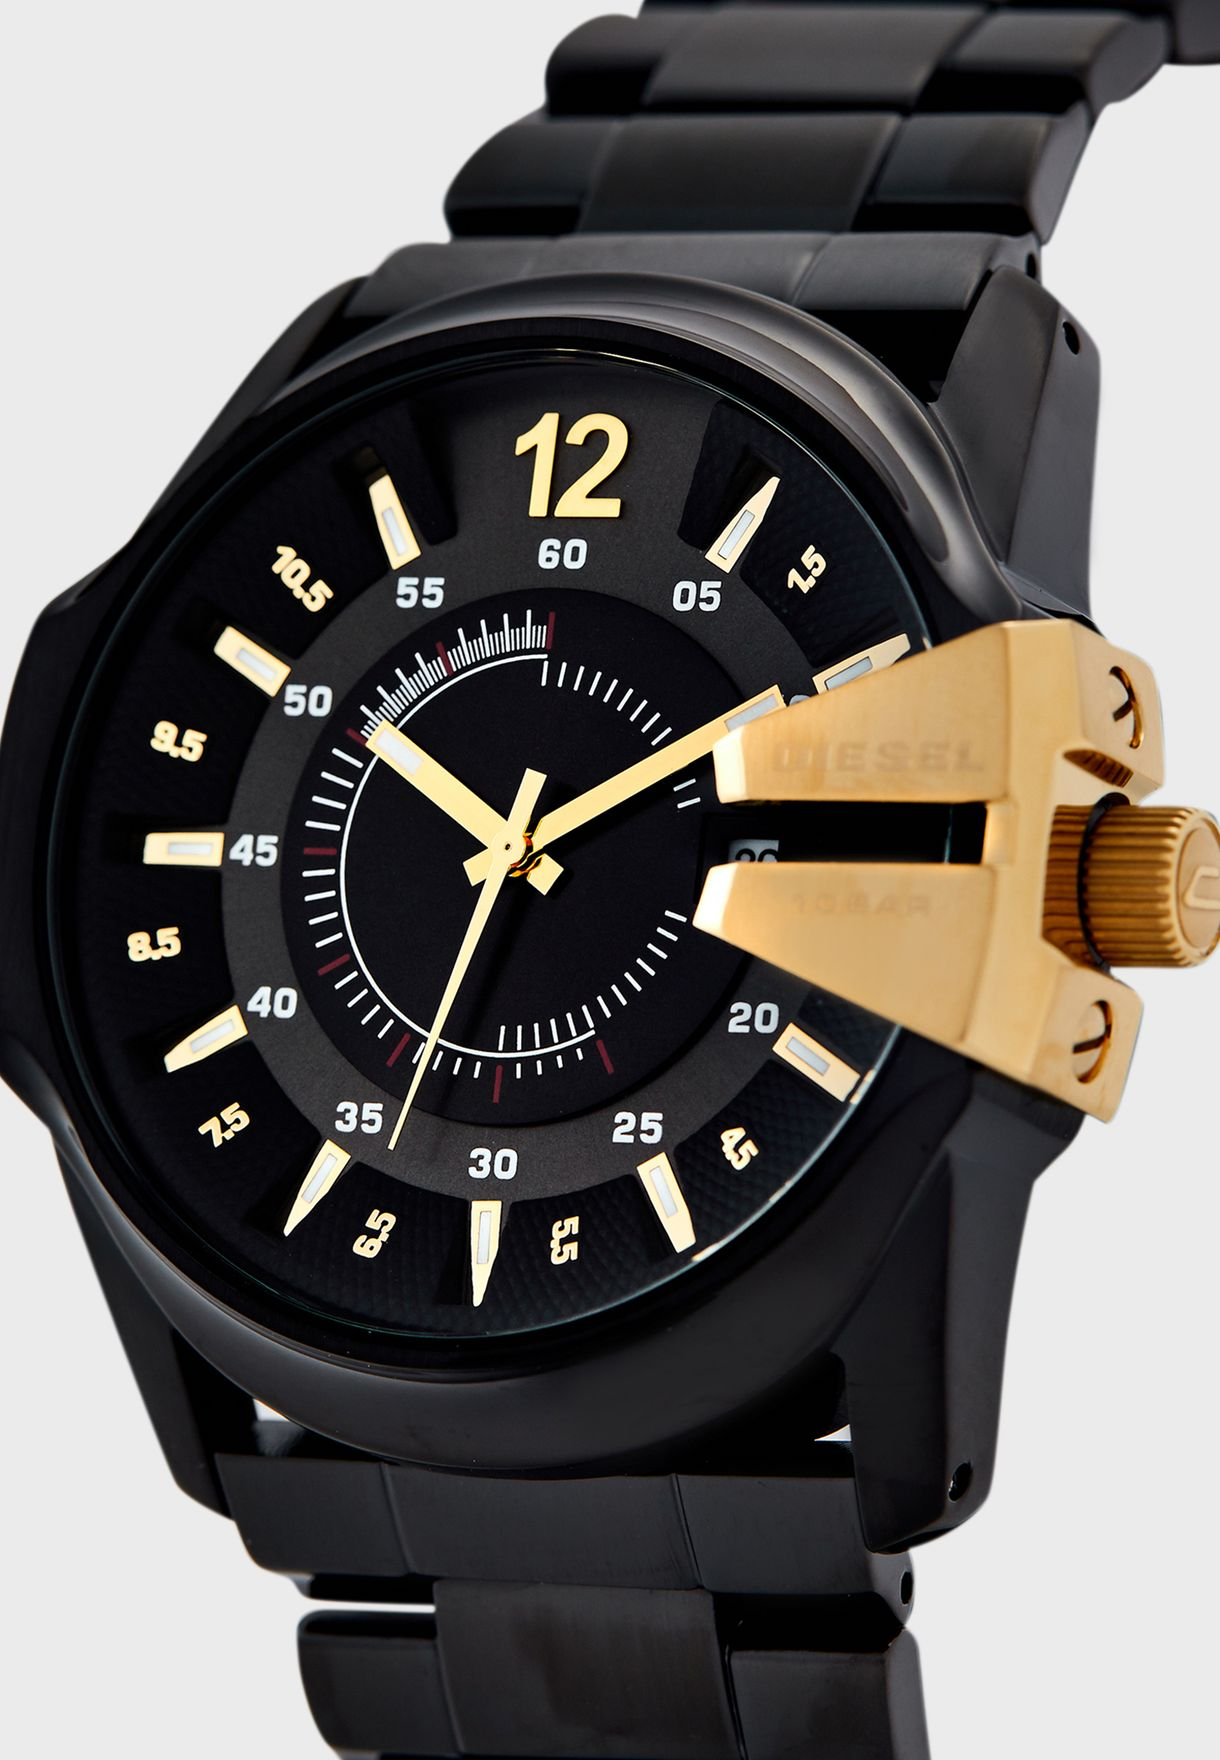 DZ1209 Analog Watch